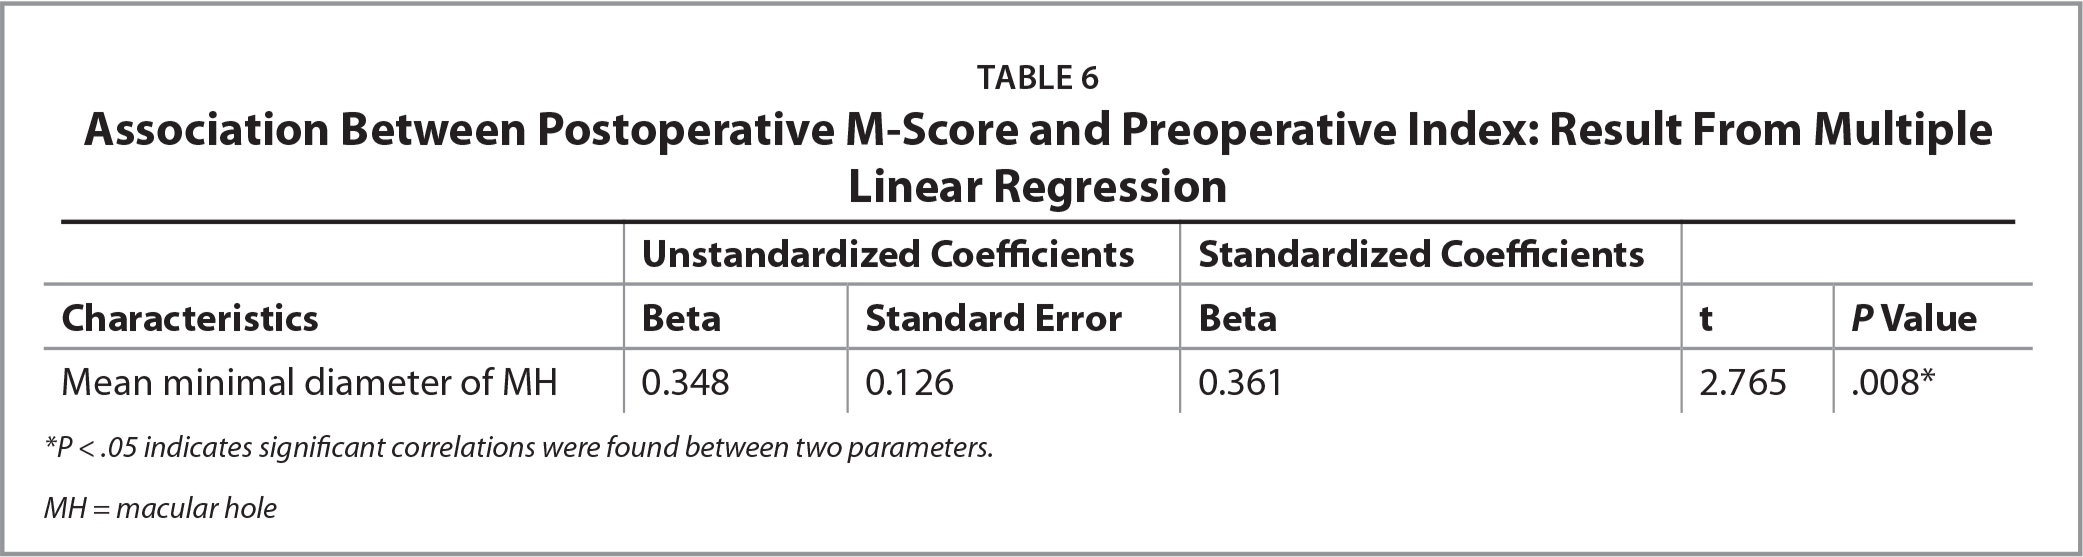 Association Between Postoperative M-Score and Preoperative Index: Result From Multiple Linear Regression